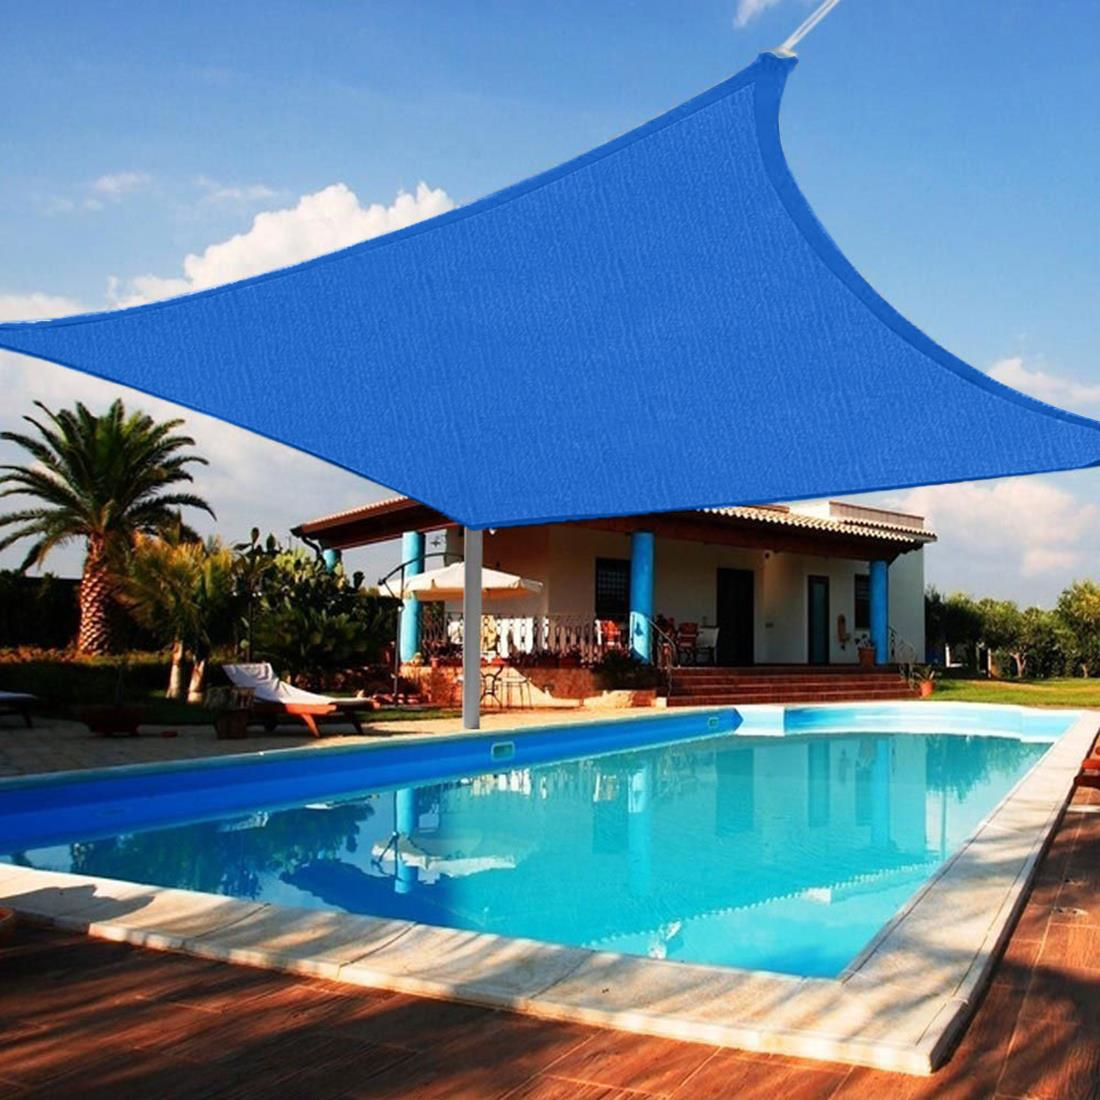 Quictent 24 x 24 ft square sun shade sail outdoor patio for 8 ft garden pool